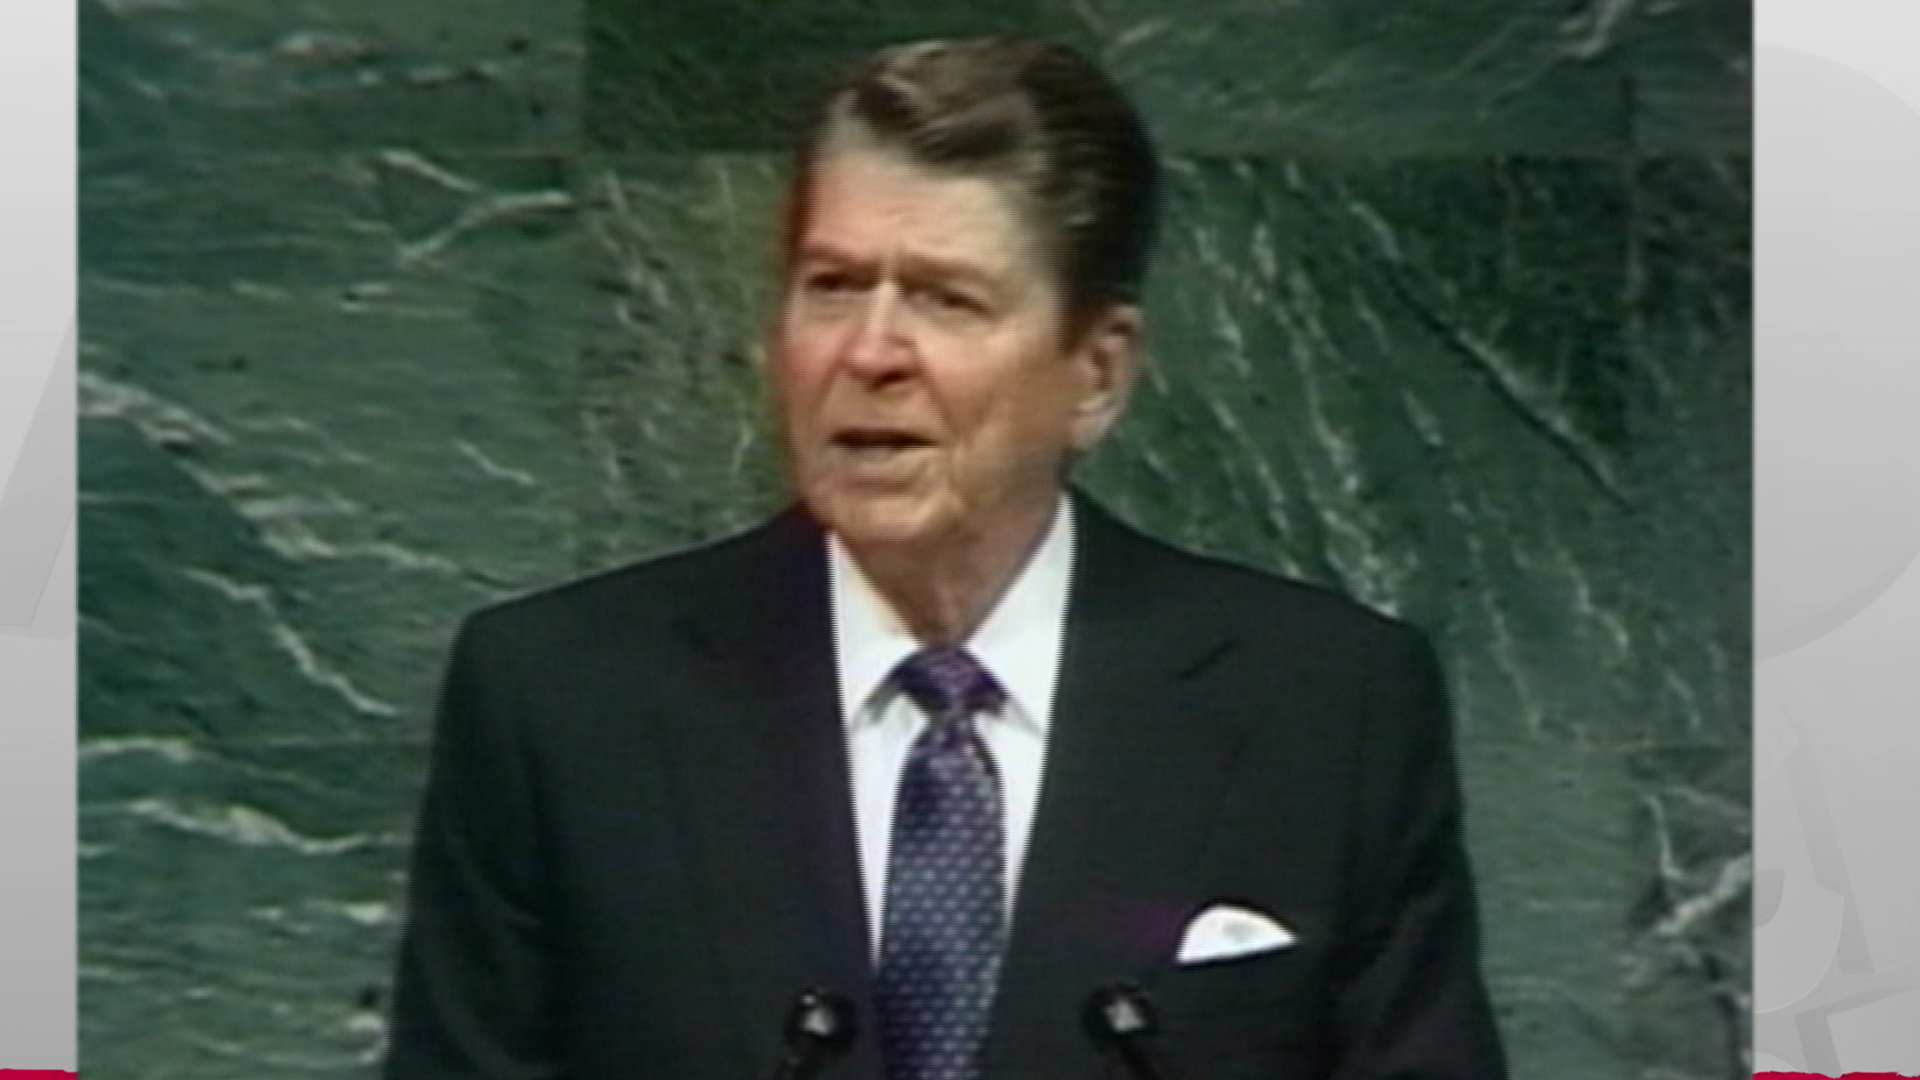 Reagan pined for unifying alien invasion